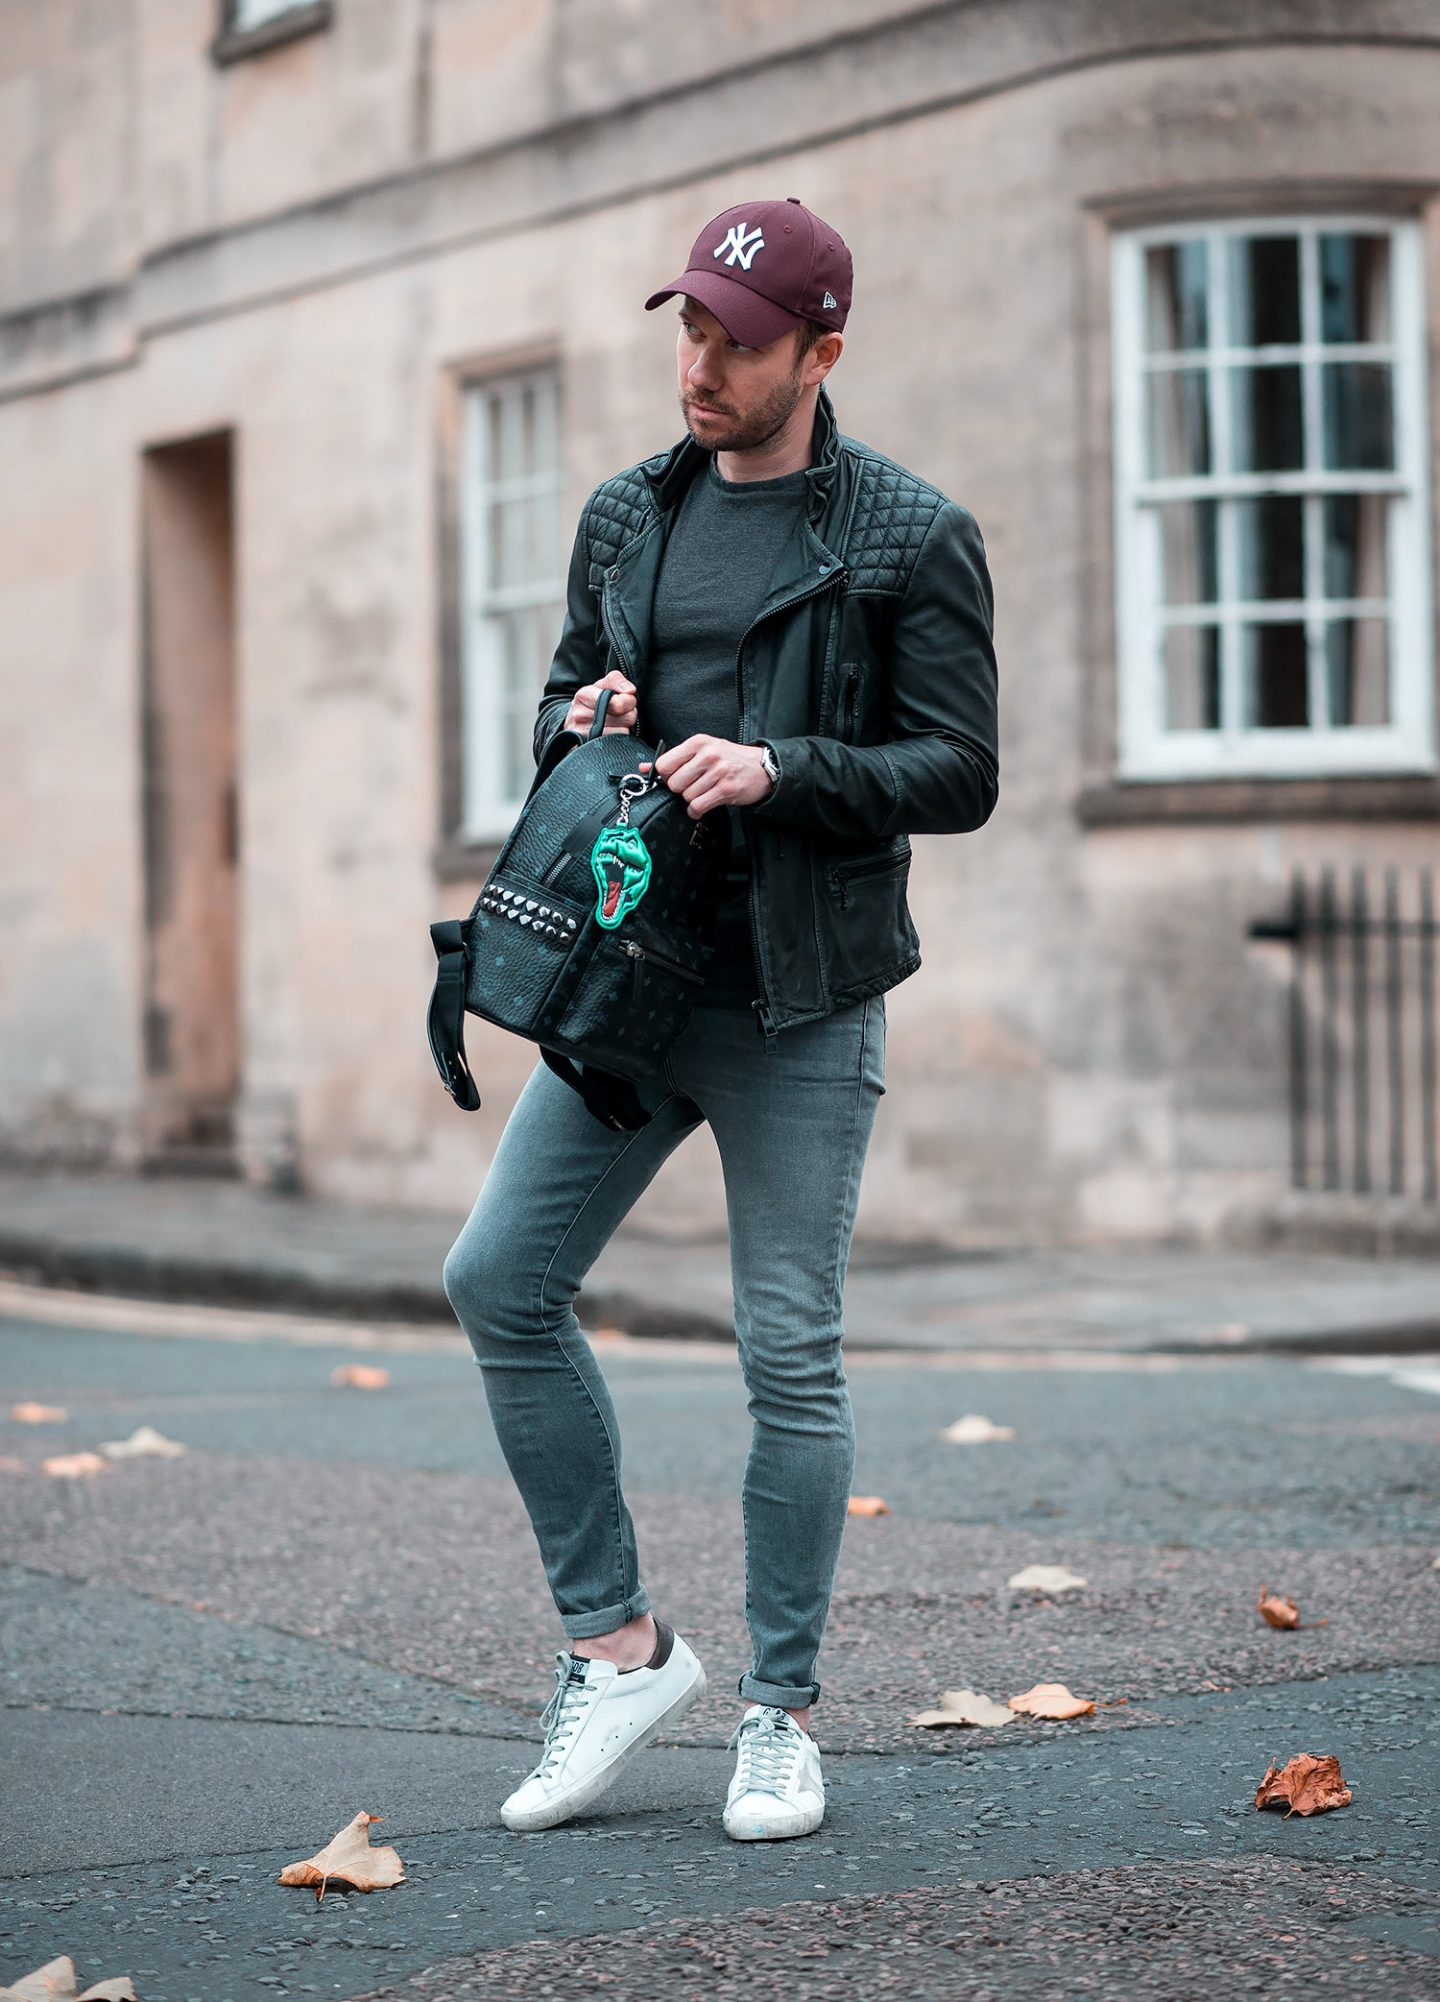 Allsaints Cargo Leather Jacket and MCM Backpack Outfit Combination